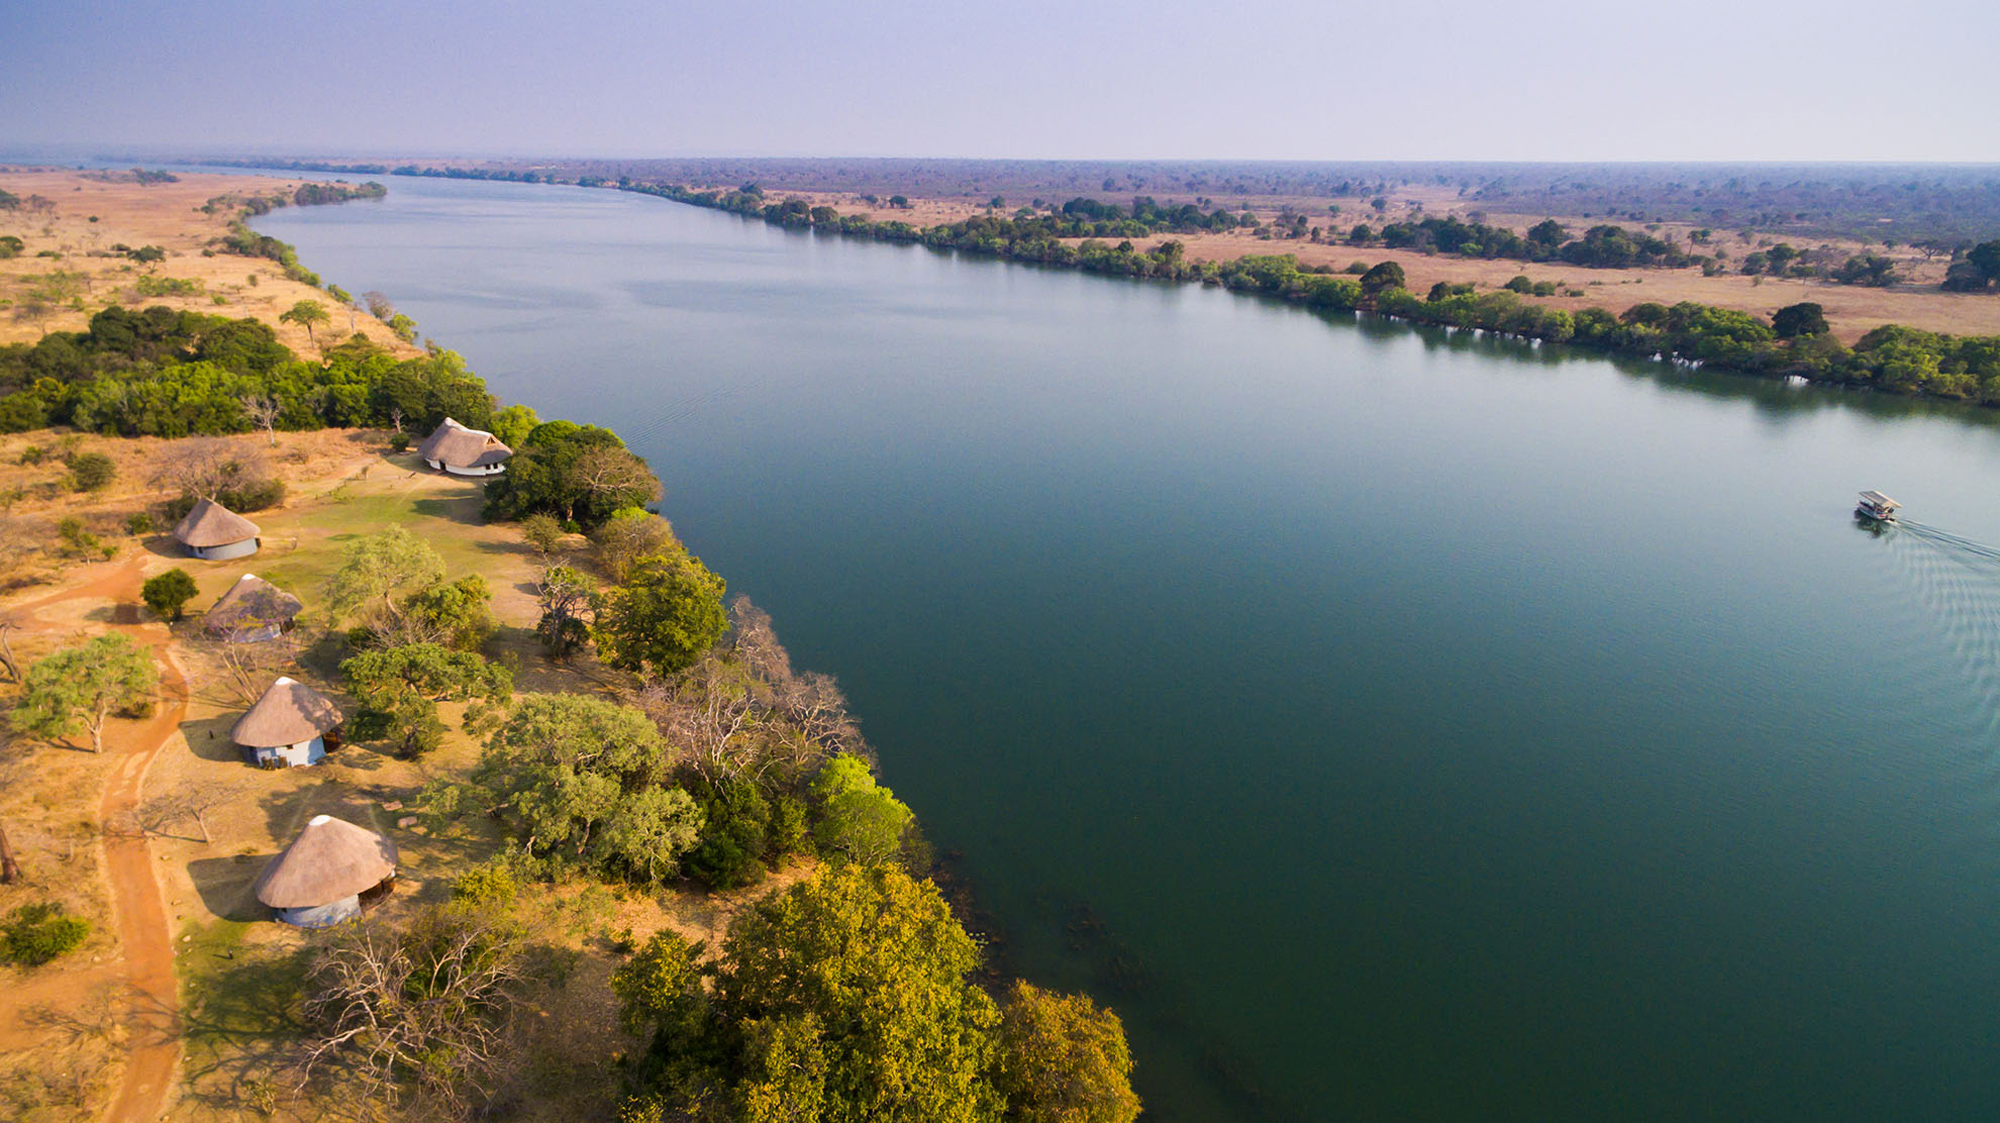 Aerial view of Mukambi Safari Lodge and the Kafue River